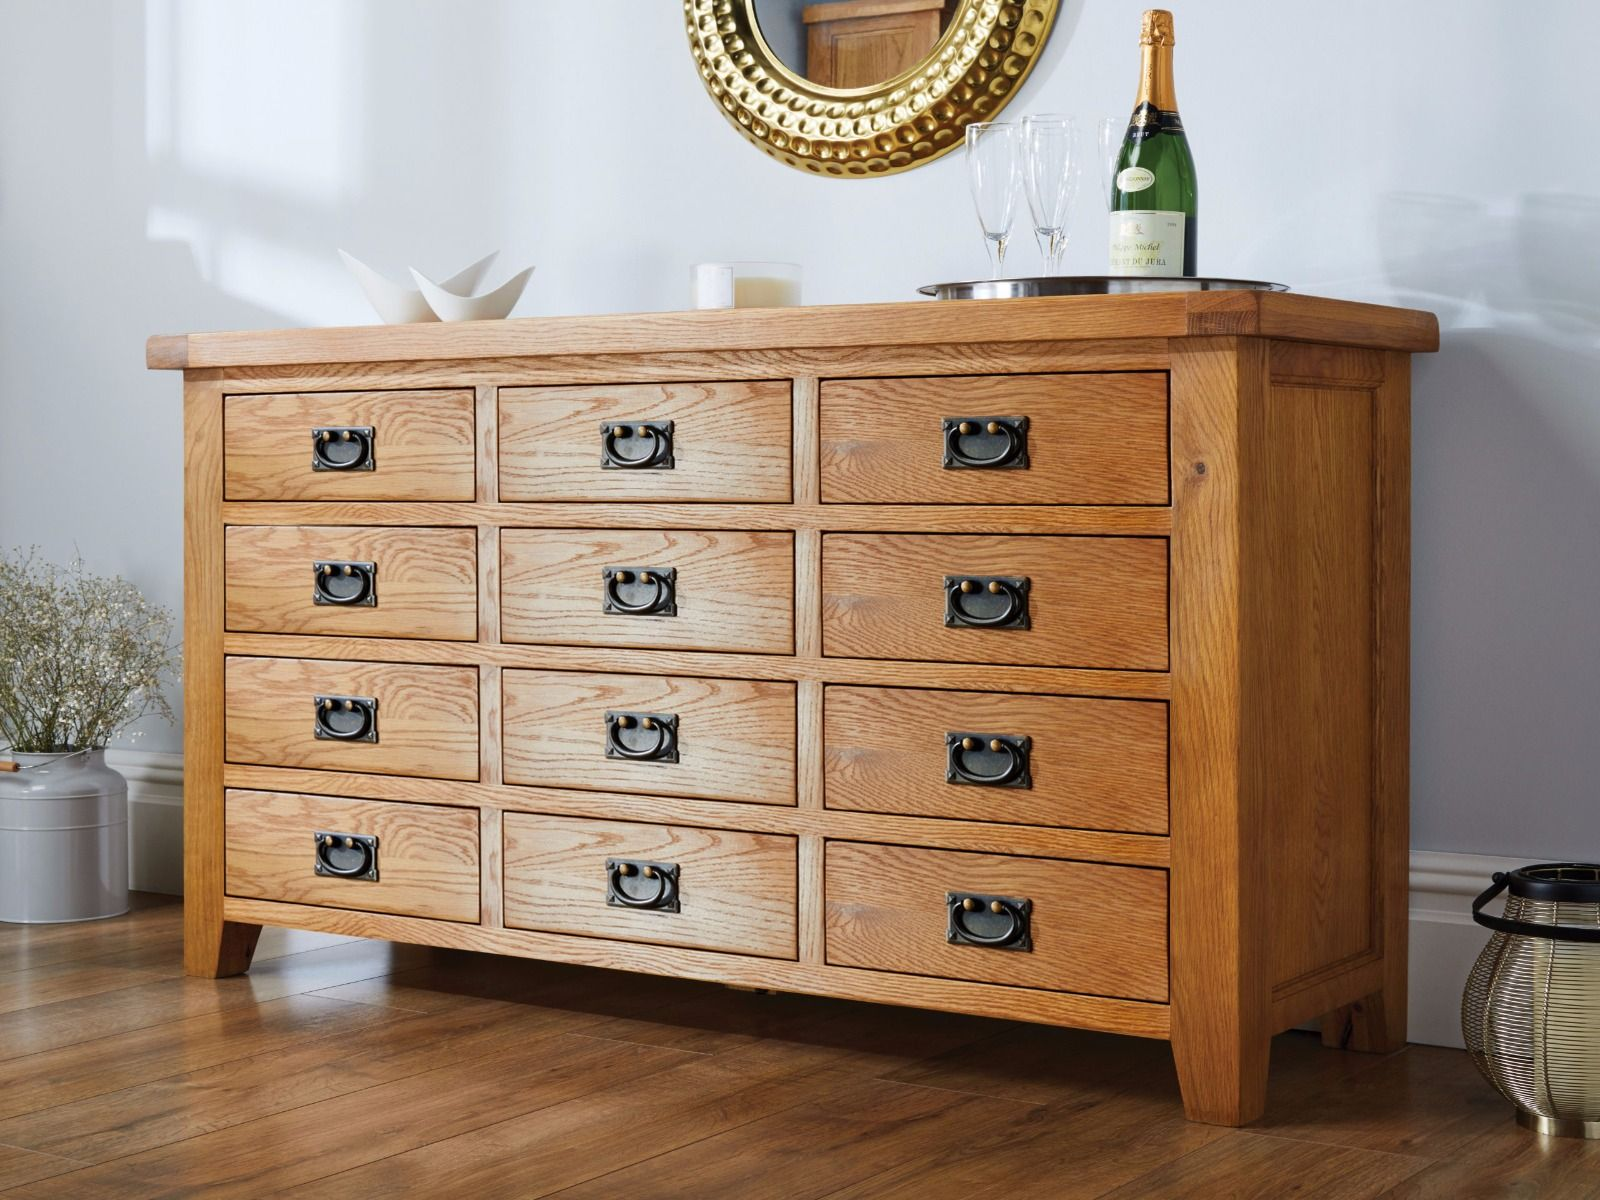 12 Drawer Chest Of Drawers Country Oak Large 12 Drawer Merchant Chest Sideboard Storage Unit